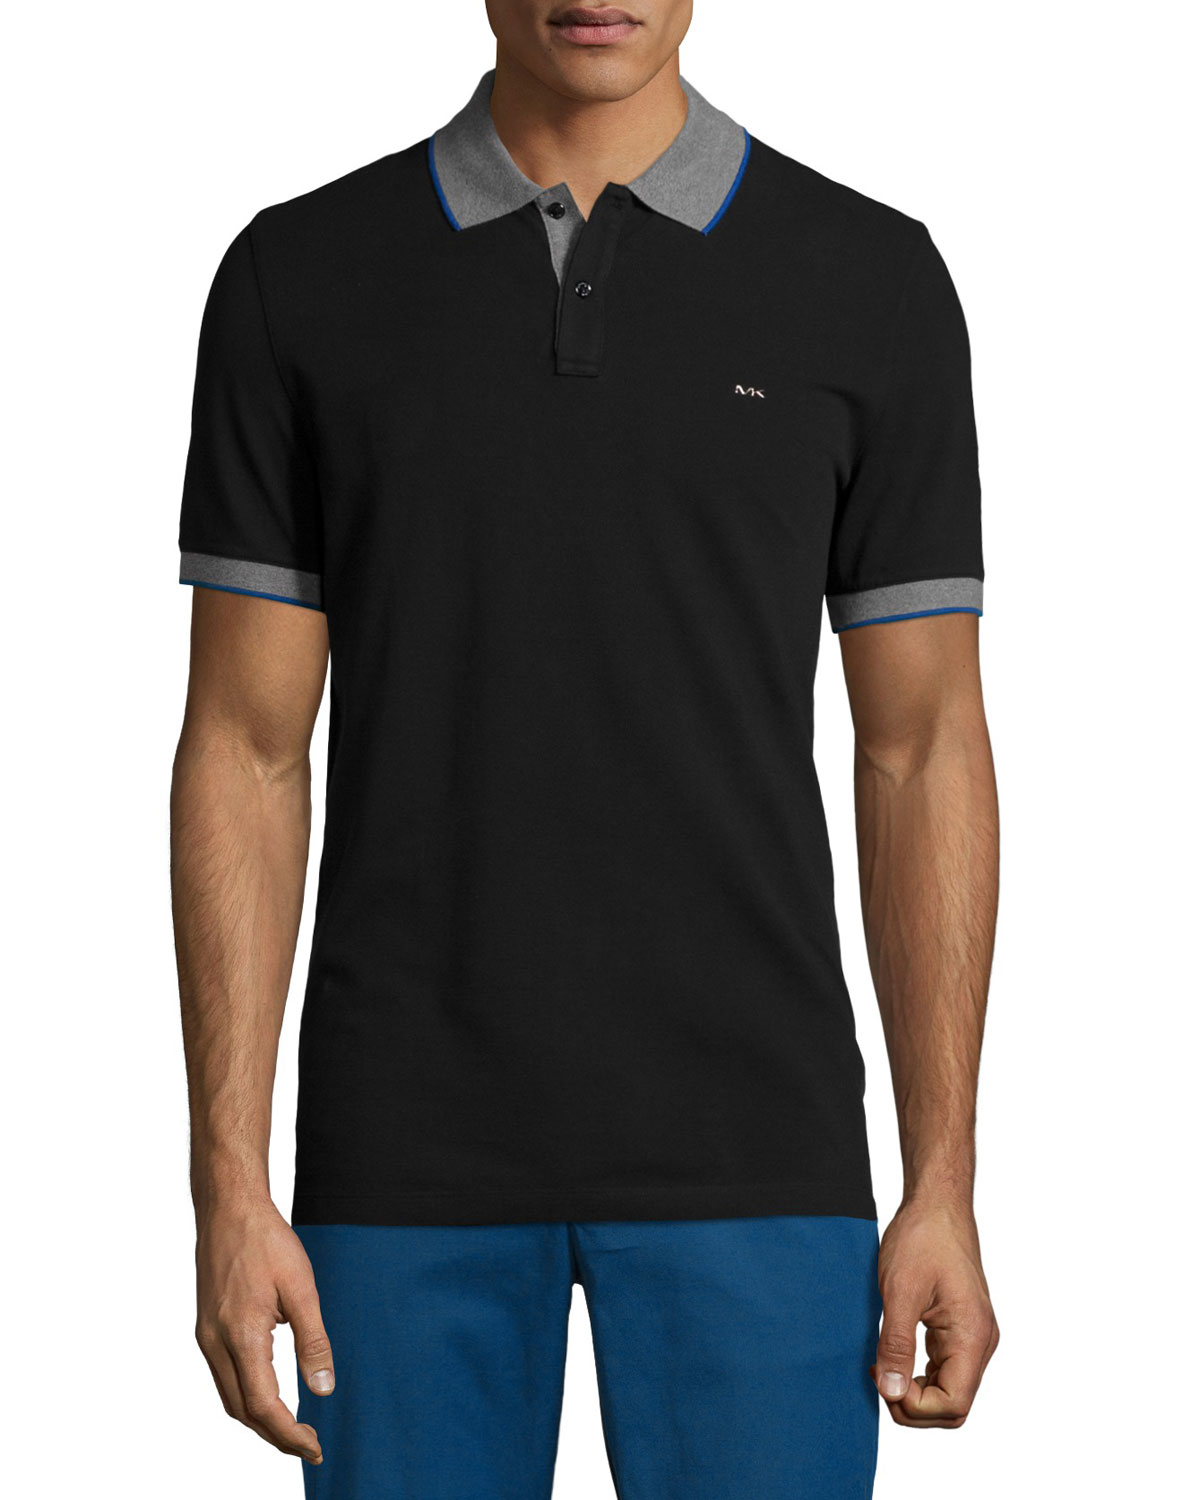 michael kors tape tipped short sleeve pique polo shirt in